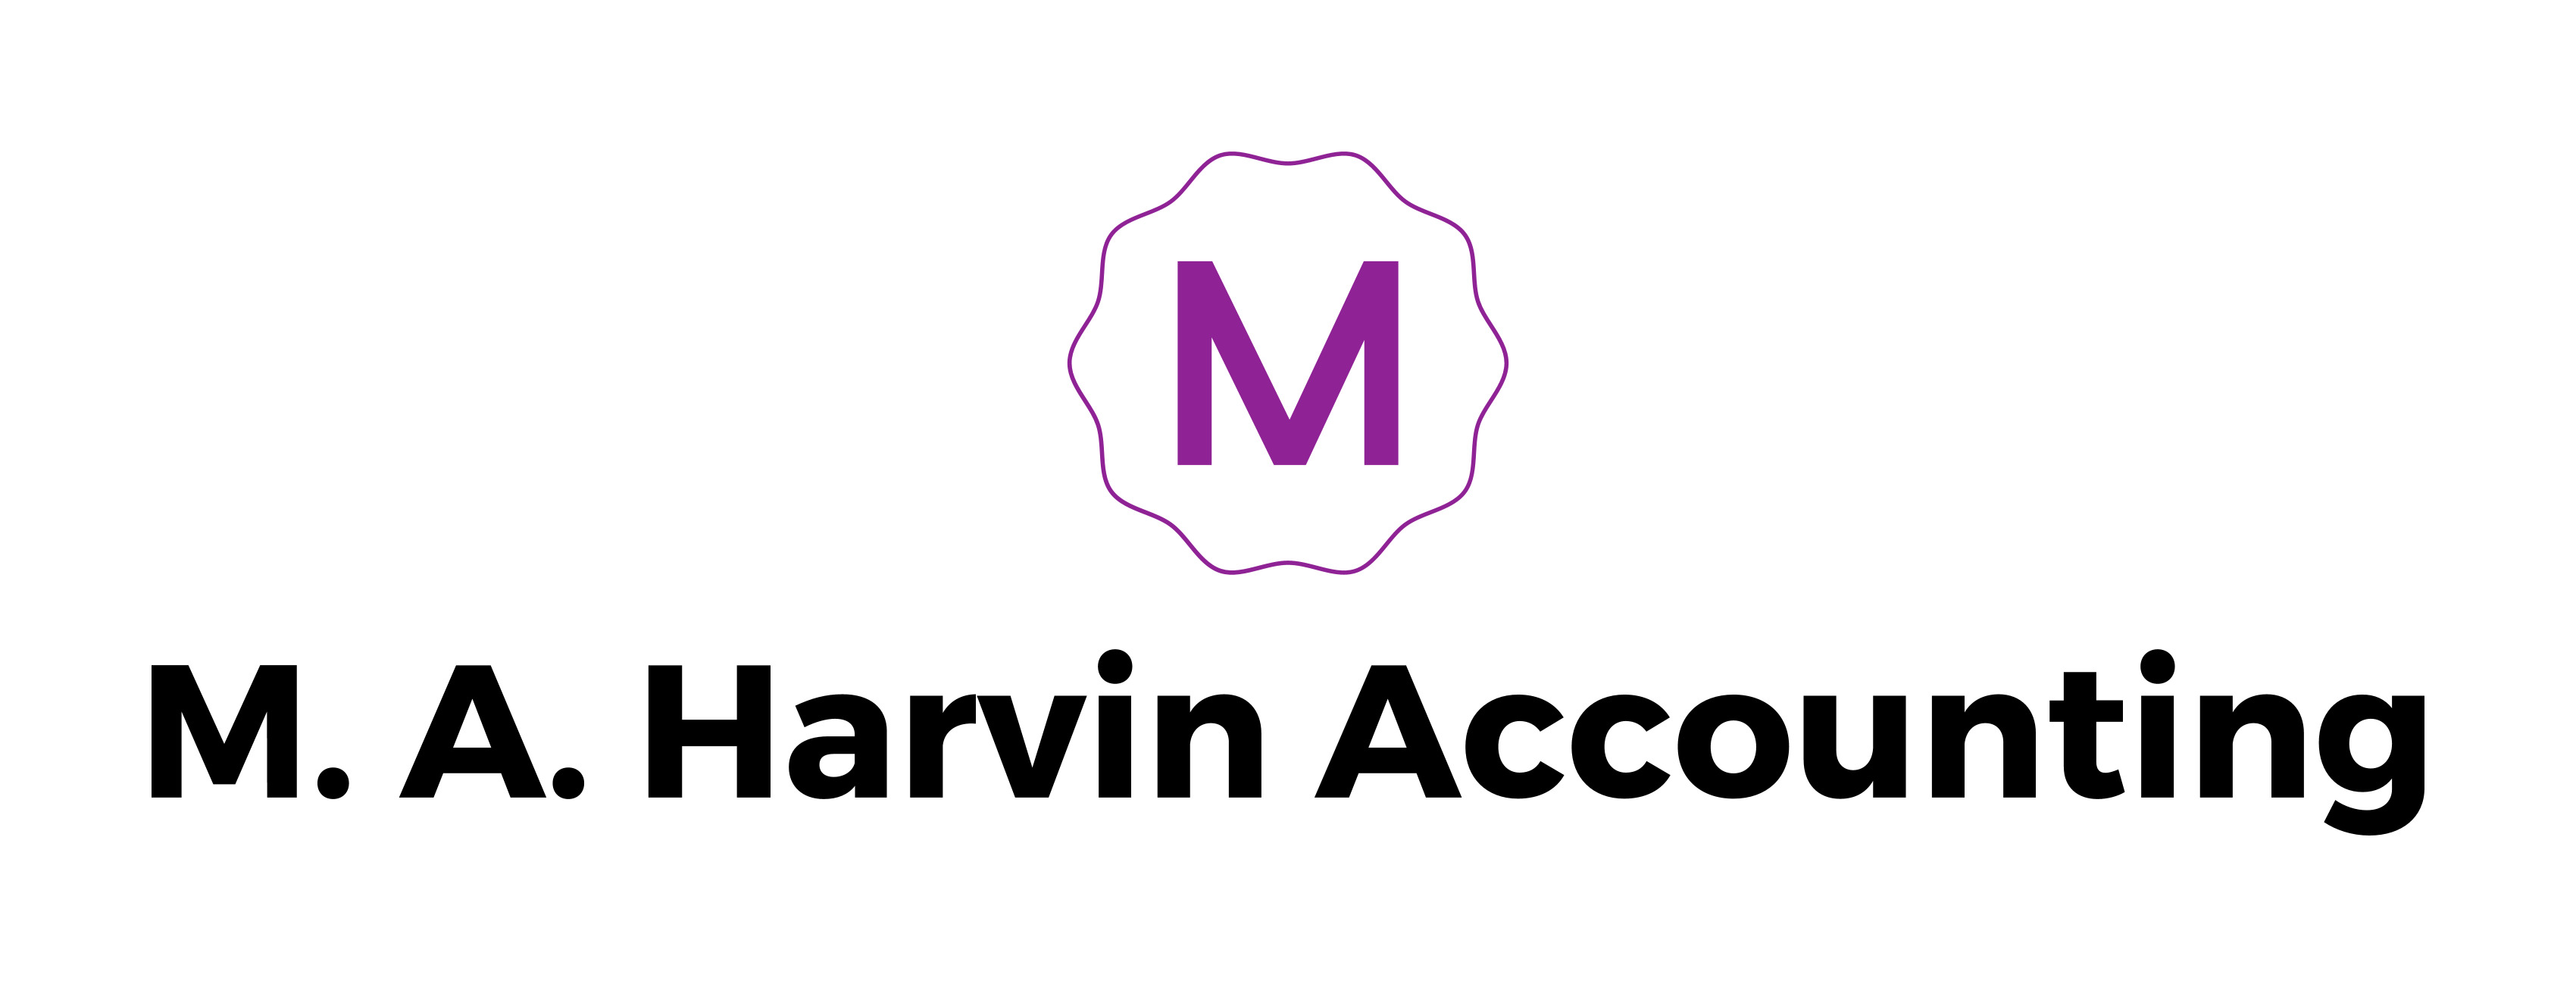 M. A. Harvin Accounting